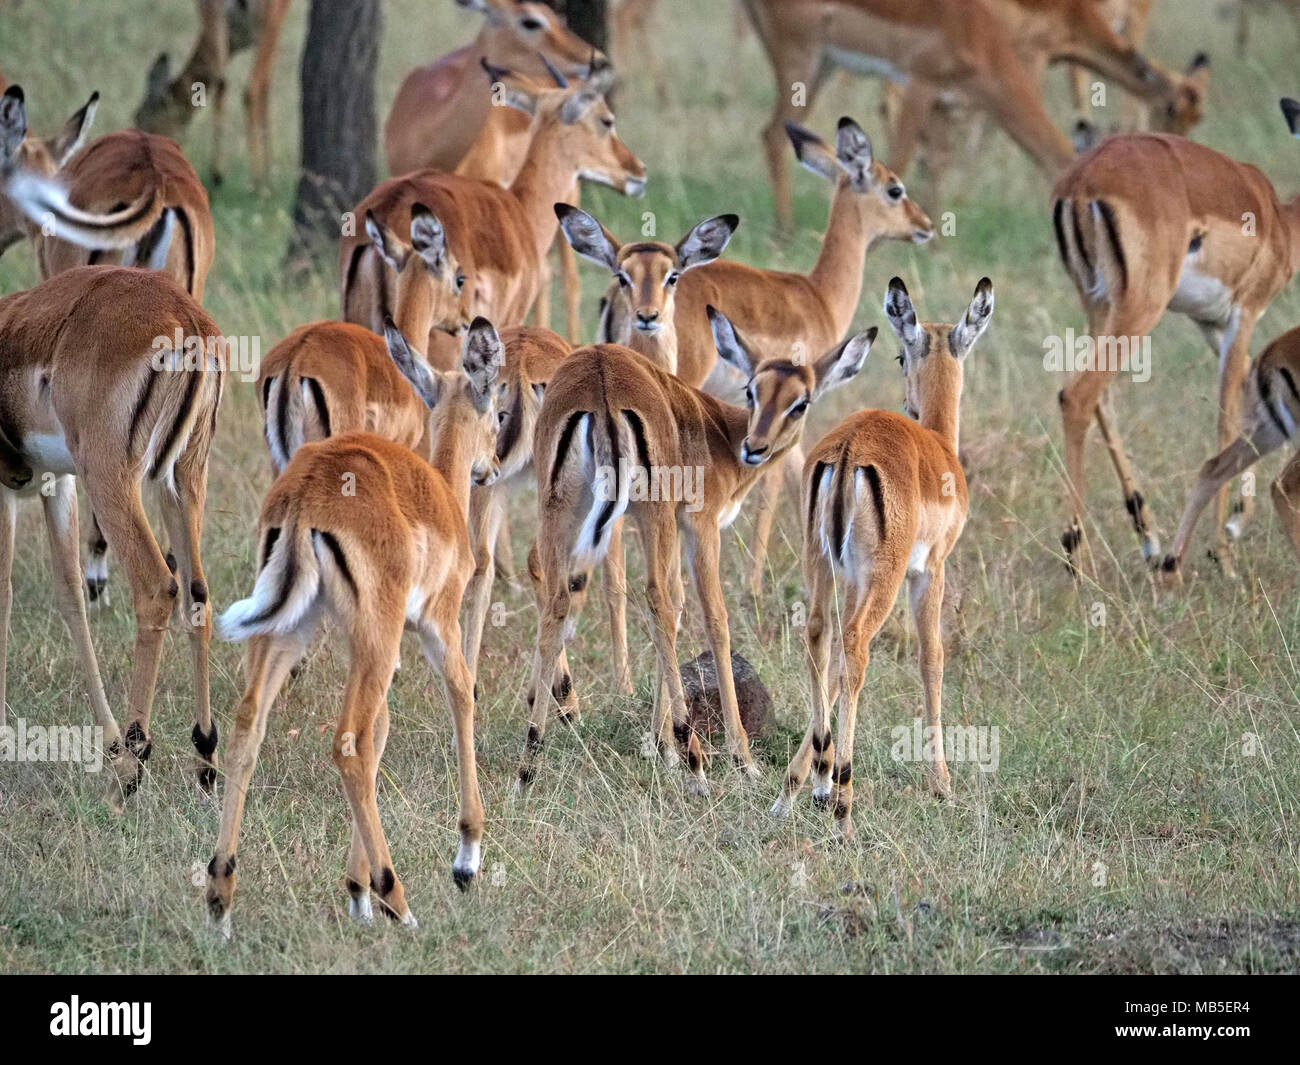 herd or harem of female impala (Aepyceros melampus) signal by wagging their tails together in Greater Mara,Kenya,Africa - Stock Image